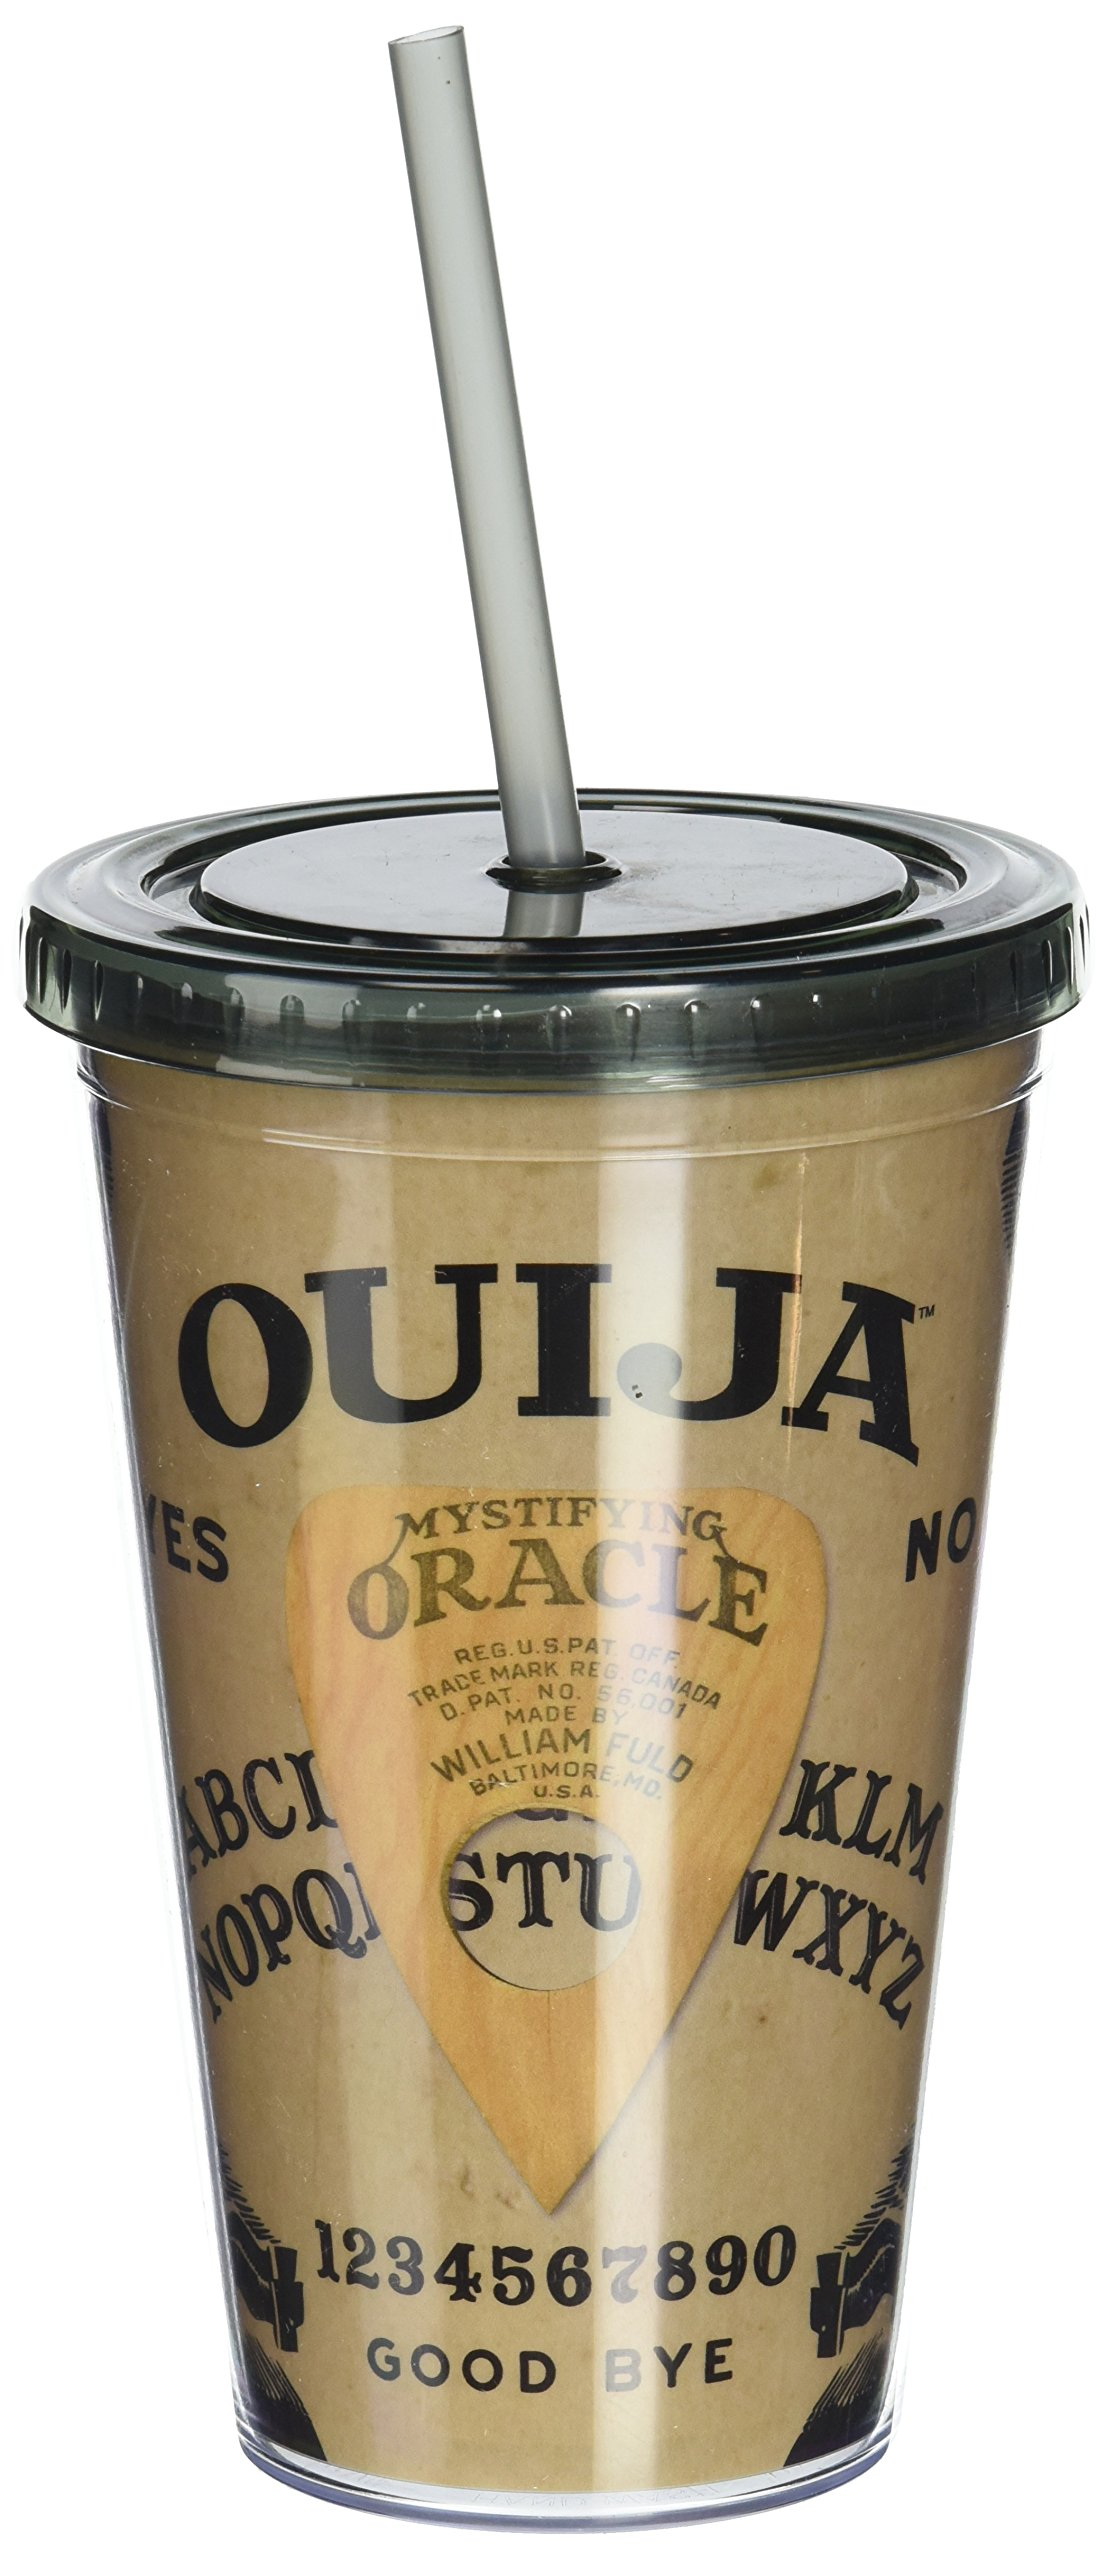 ICUP Hasbro Ouija Board Cup with Straw, Clear by ICUP (Image #1)